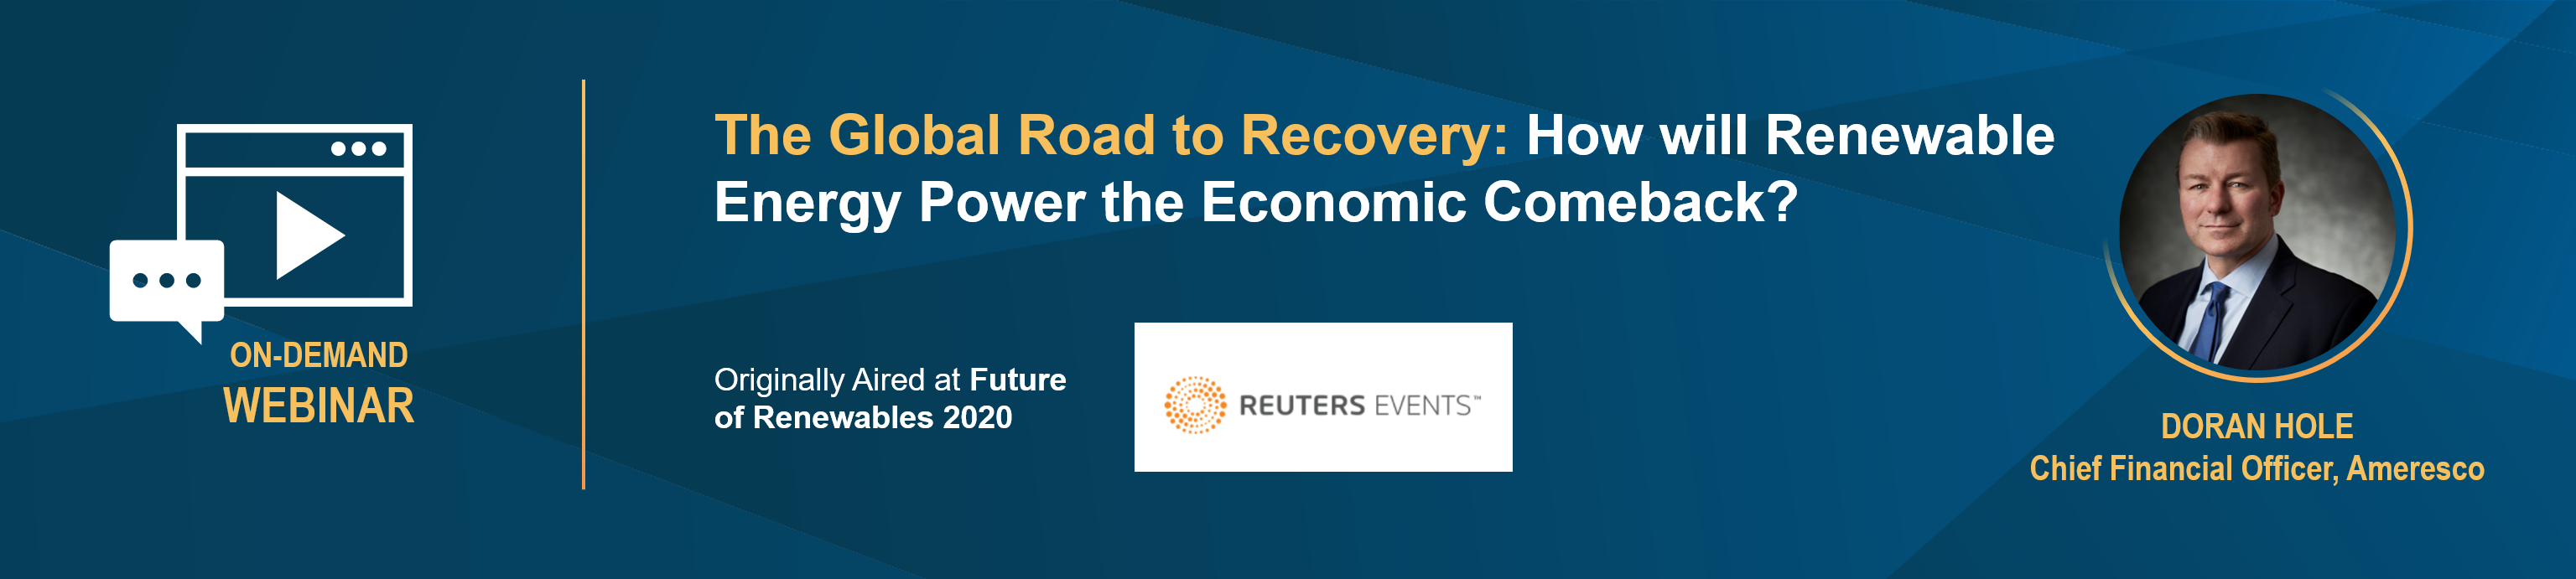 Landing Page Image - The Global Road to Recovery